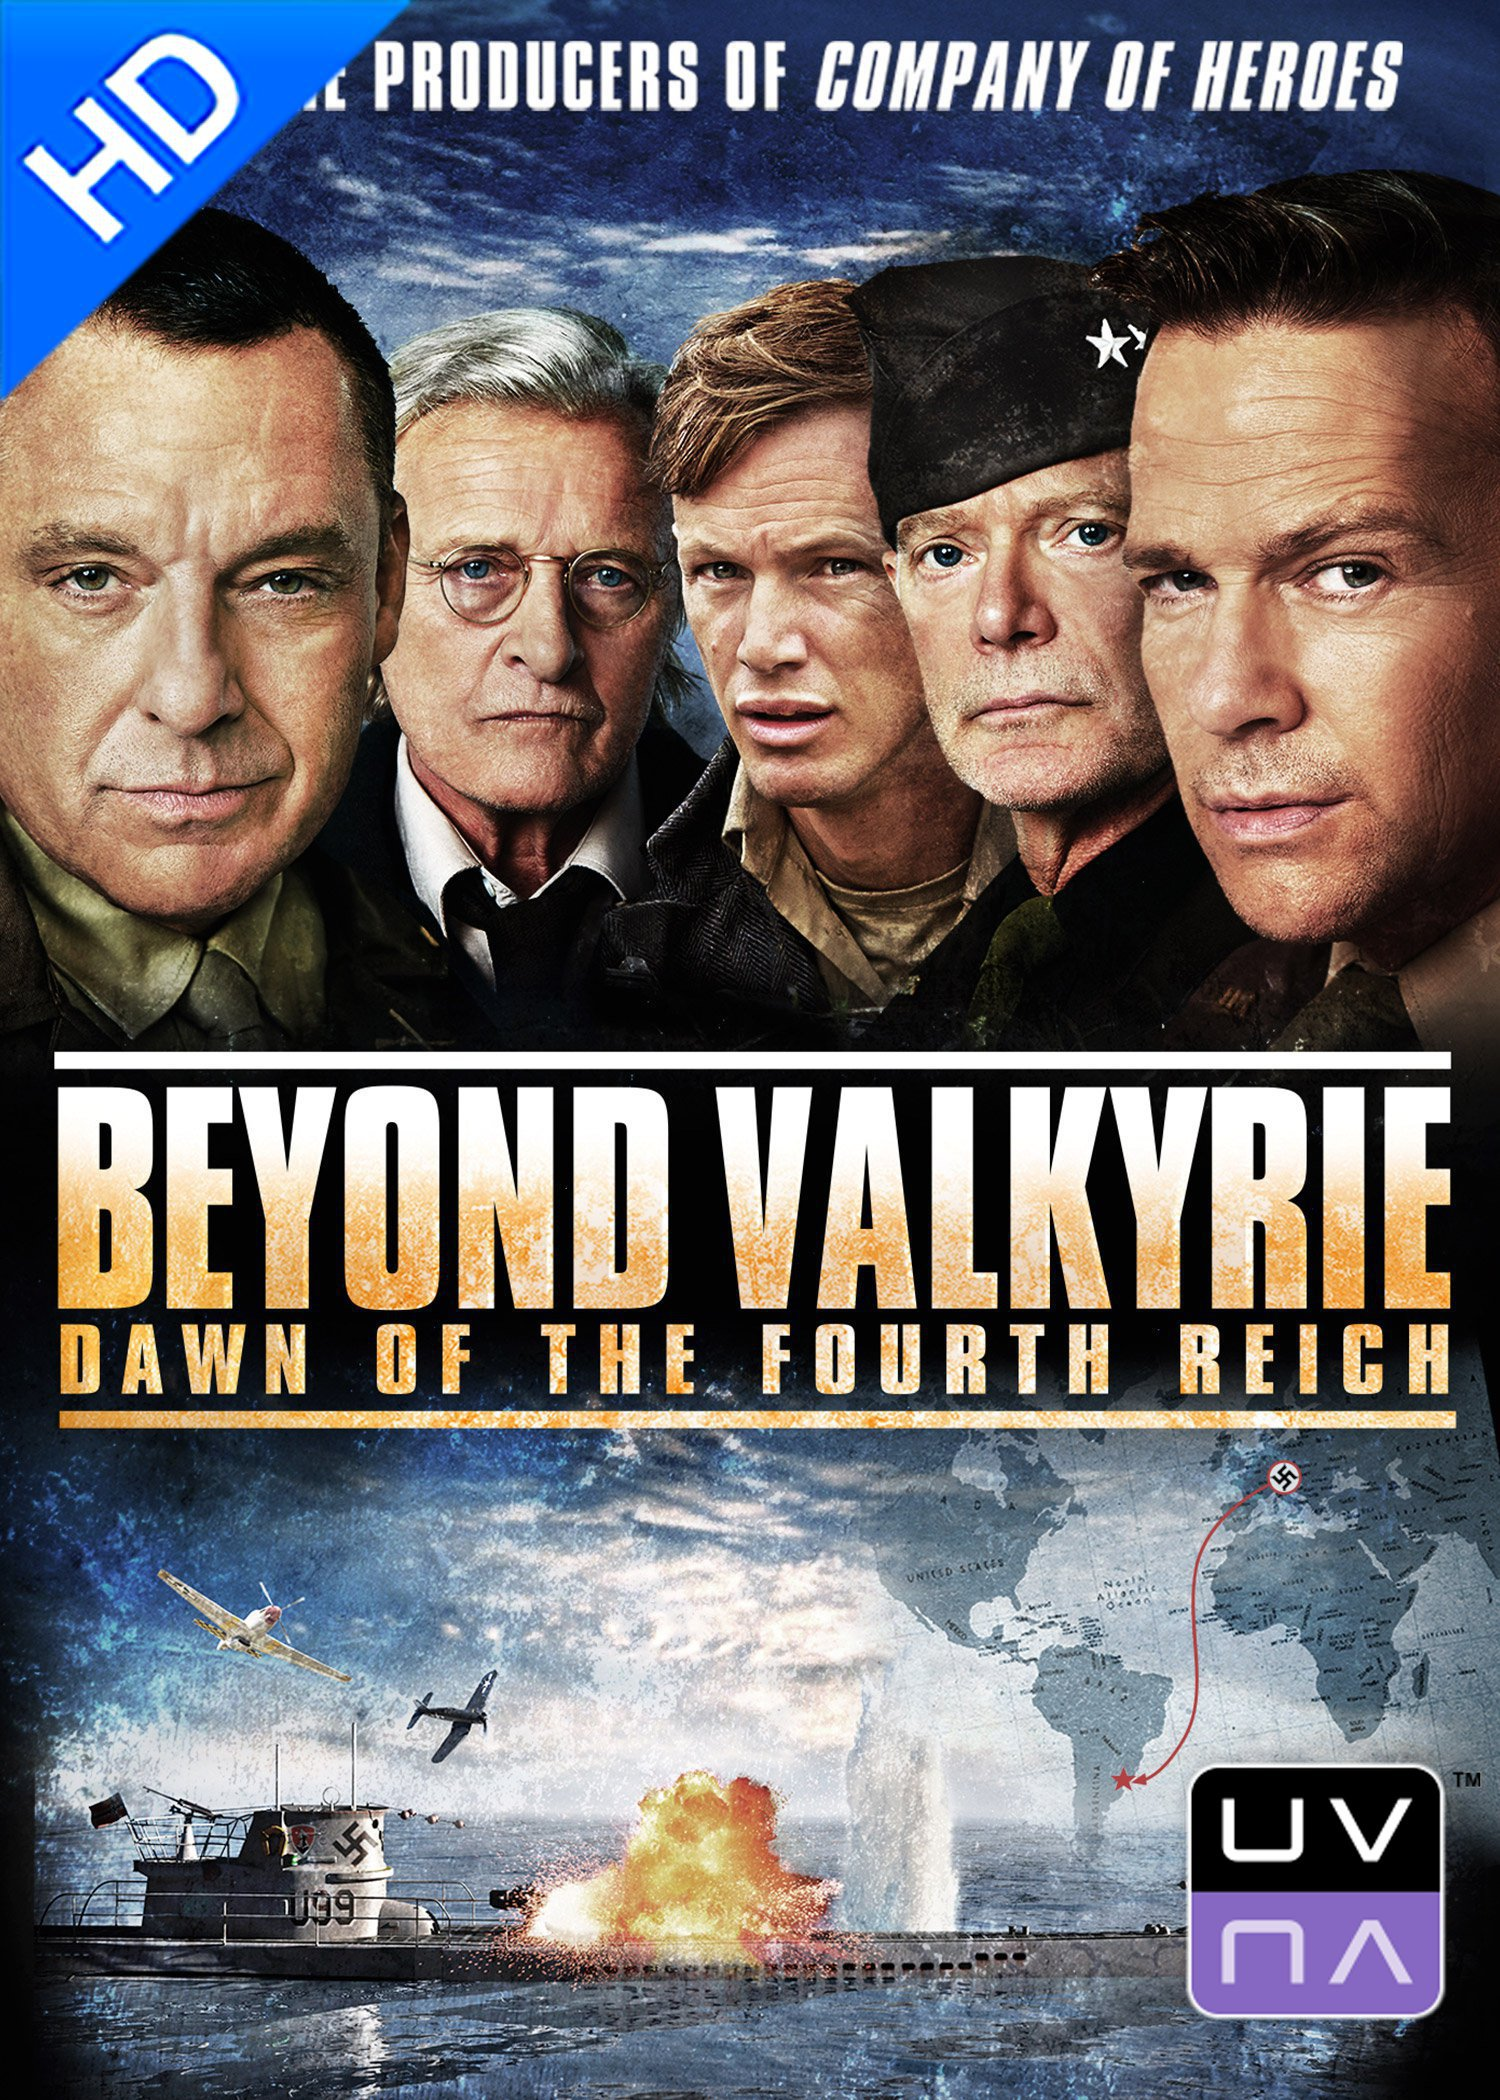 beyond-valkyre-dawn-of-the-fourth-reich